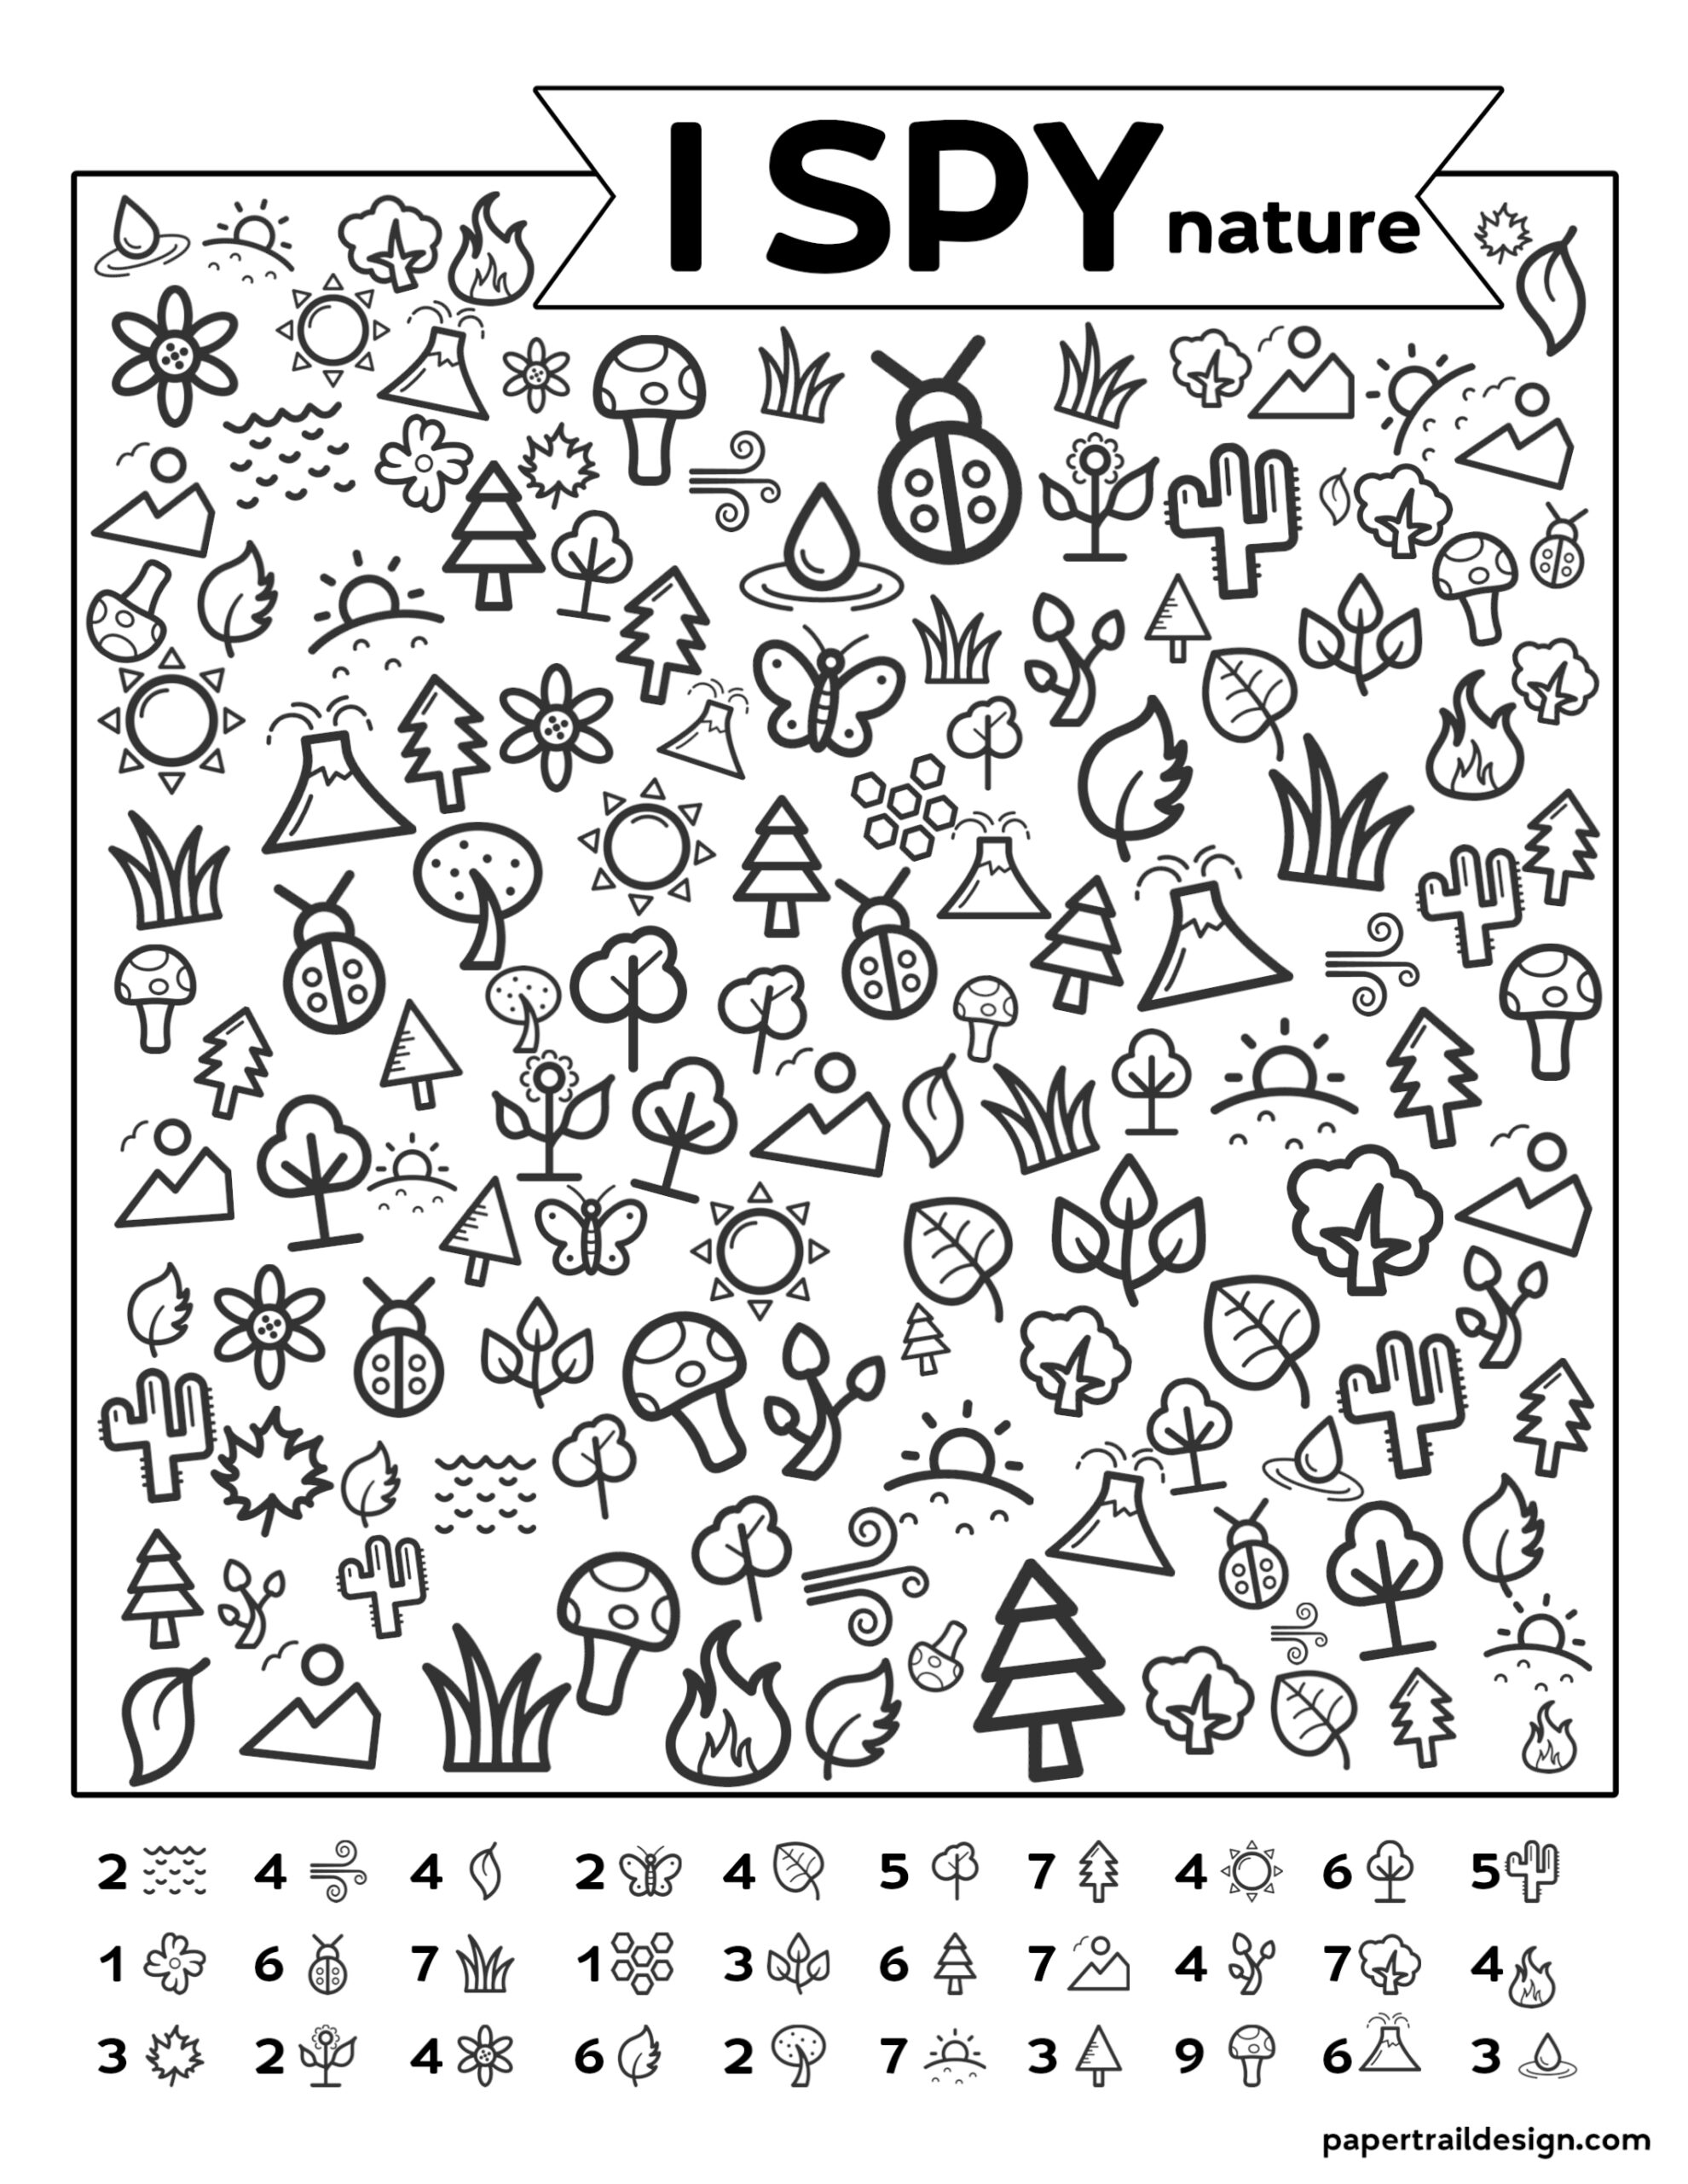 Free Printable I Spy Nature Game